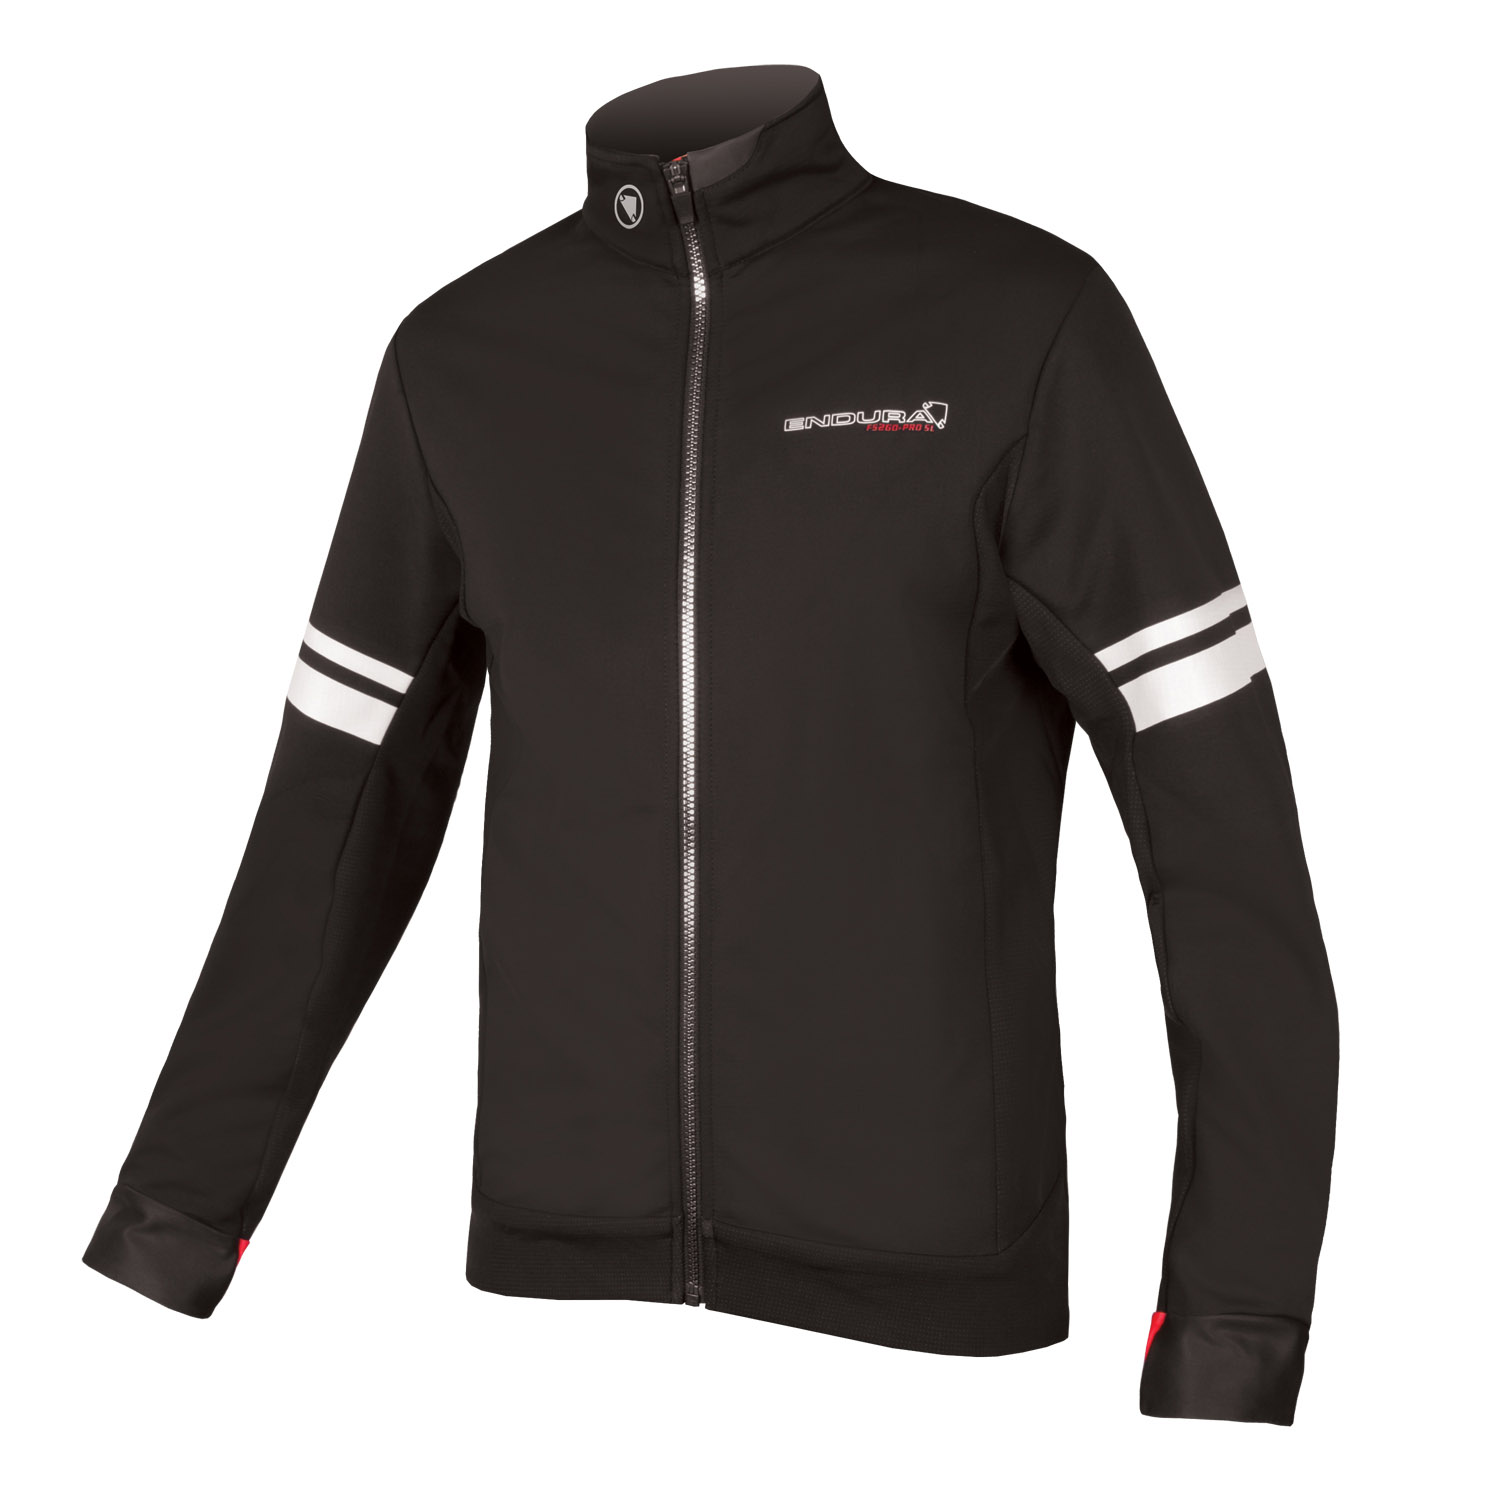 Pro SL Thermal Windproof Jacket Black